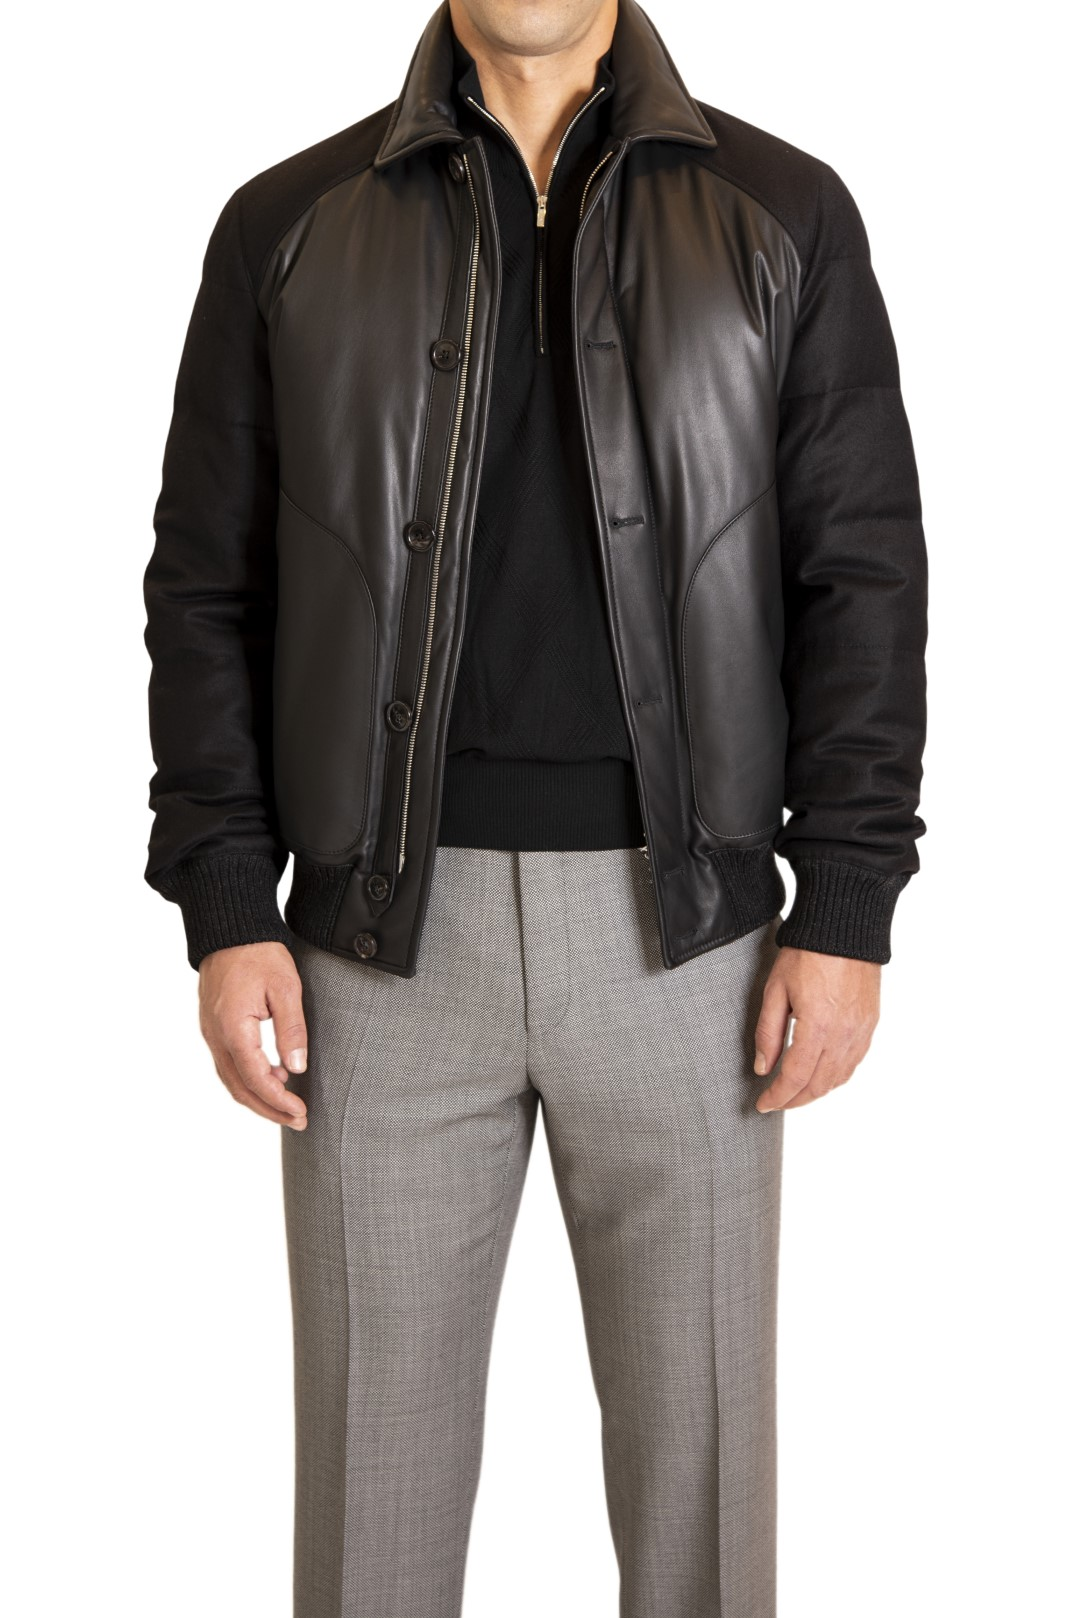 CORTIGIANI LEATHER JACKET